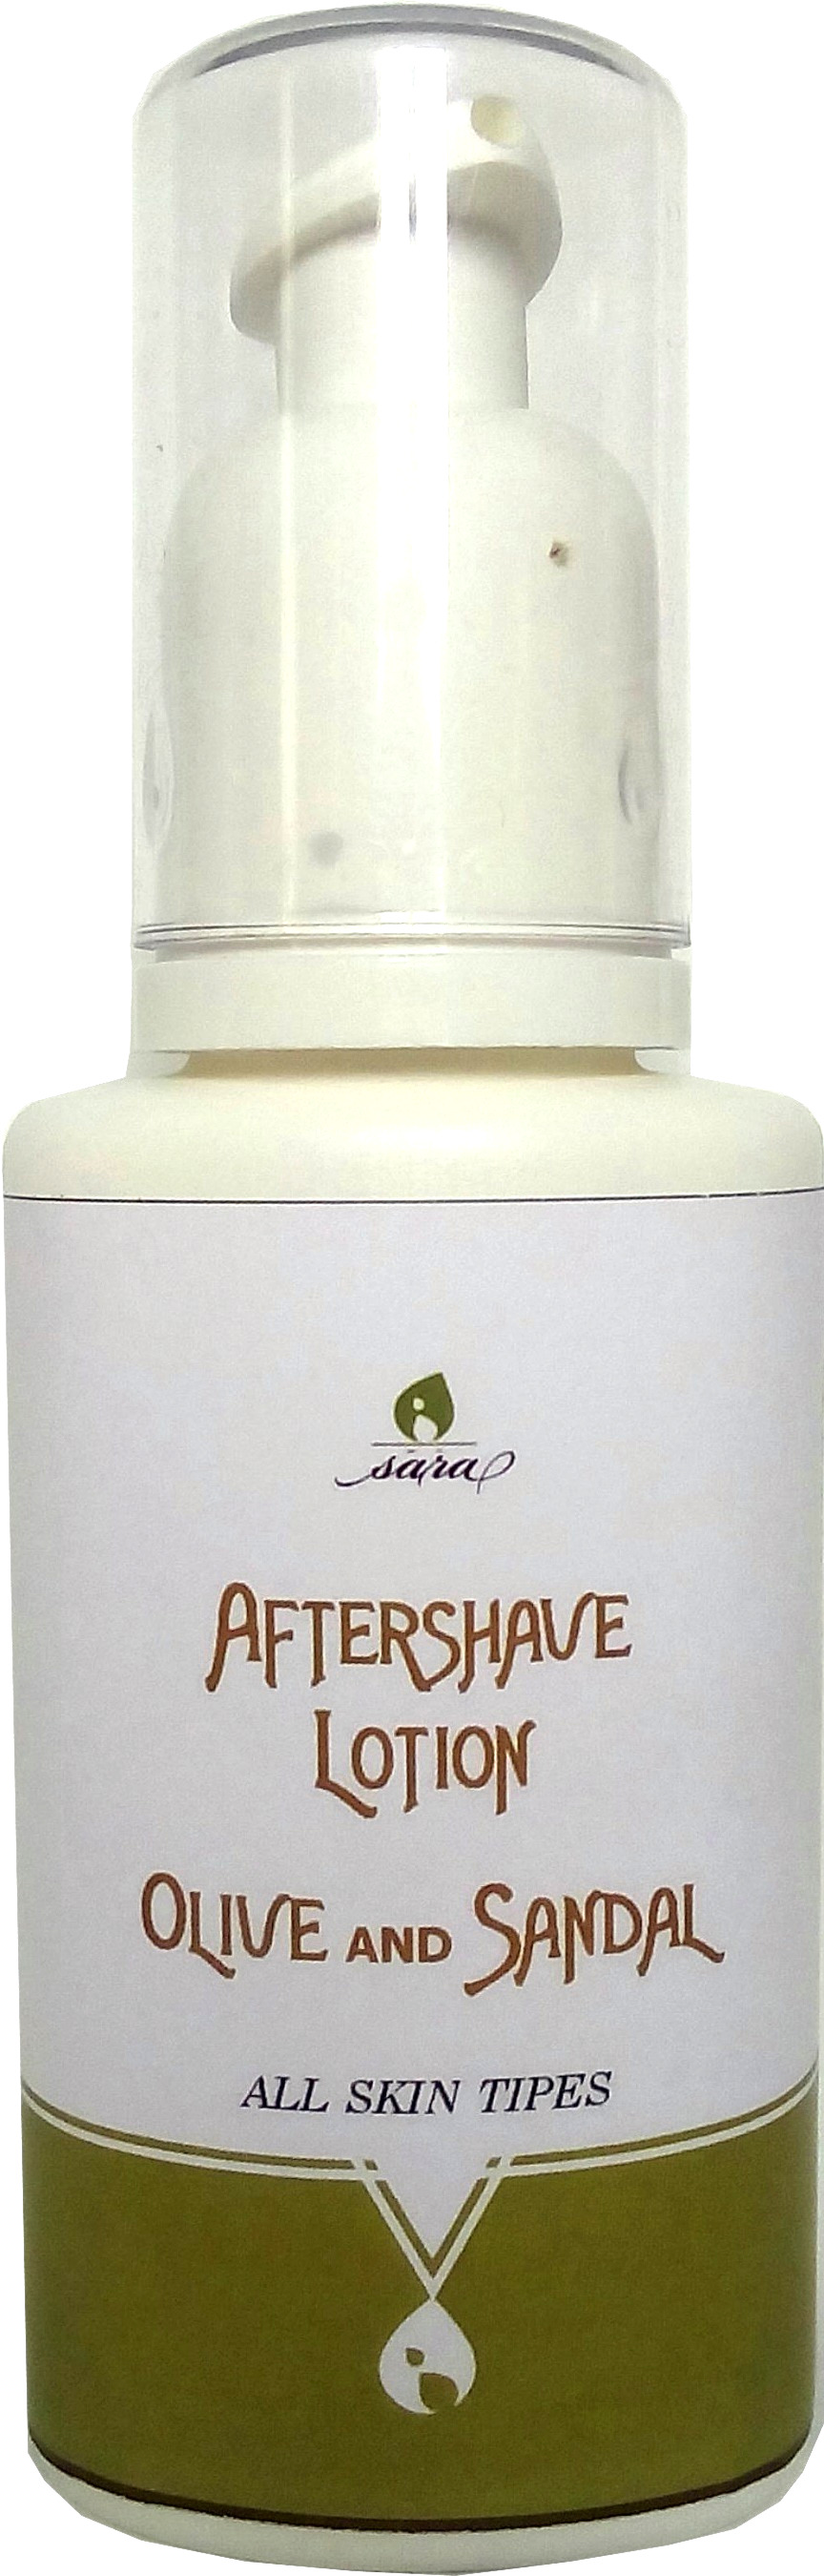 aftershave 2